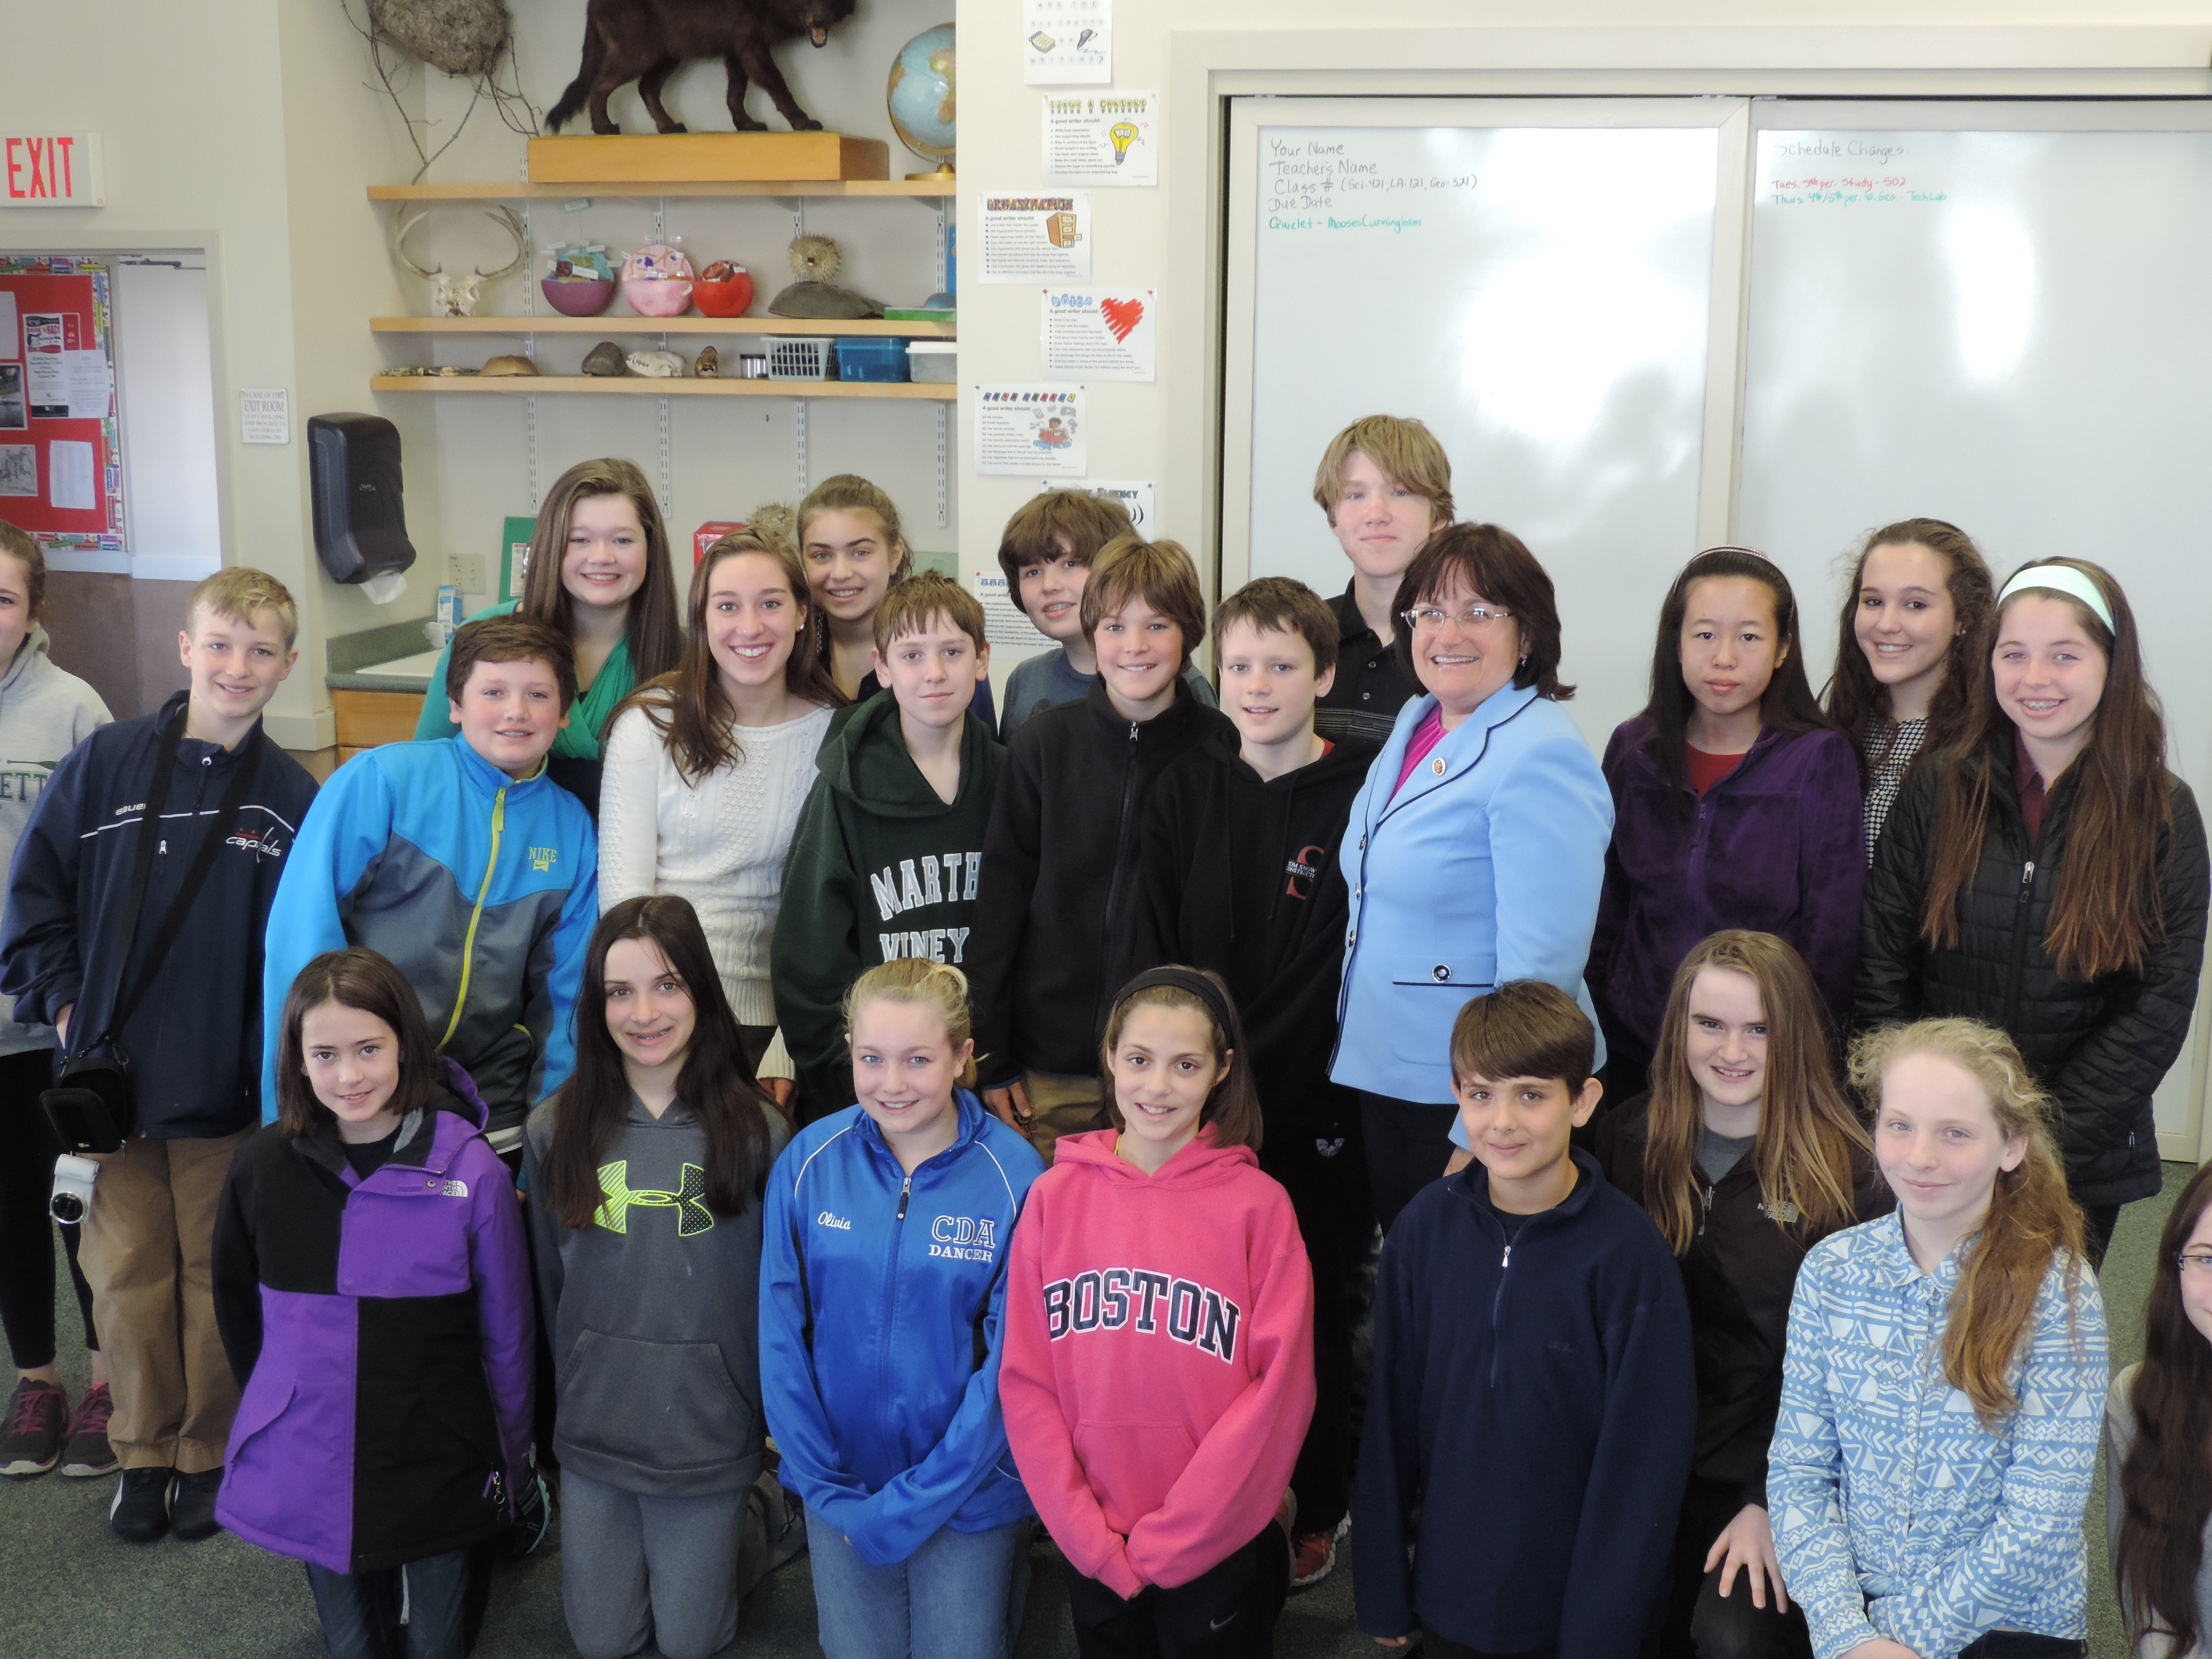 Wednesday, April 16, 2014 | Congresswoman Kuster visits with Shaker Road Students